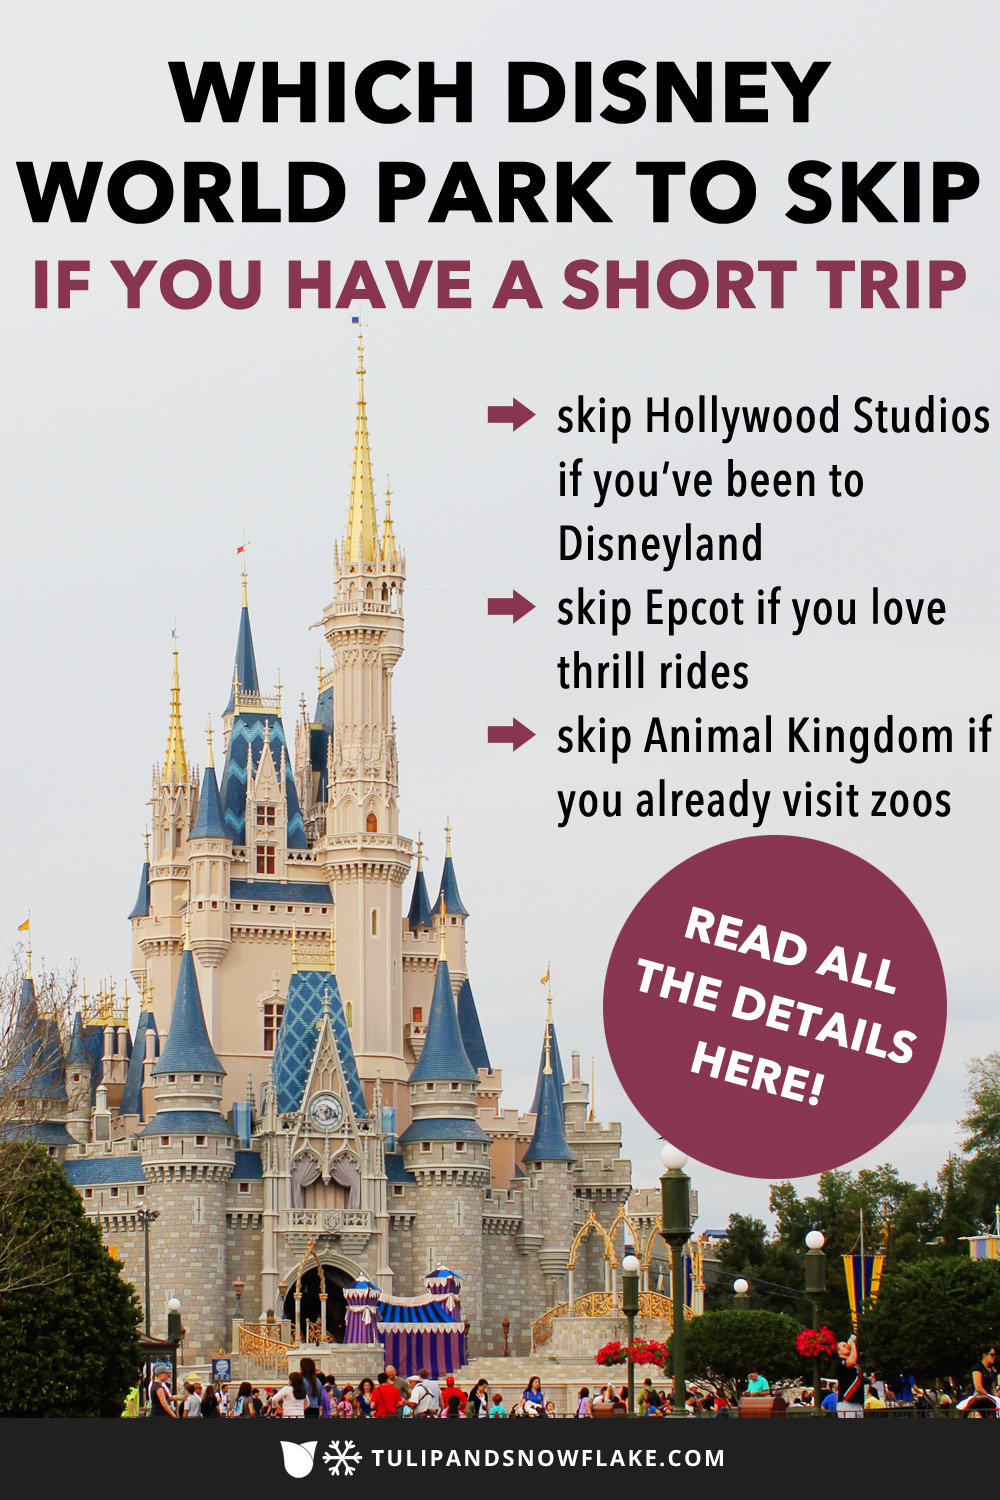 Which Disney World park to skip if you have a short trip